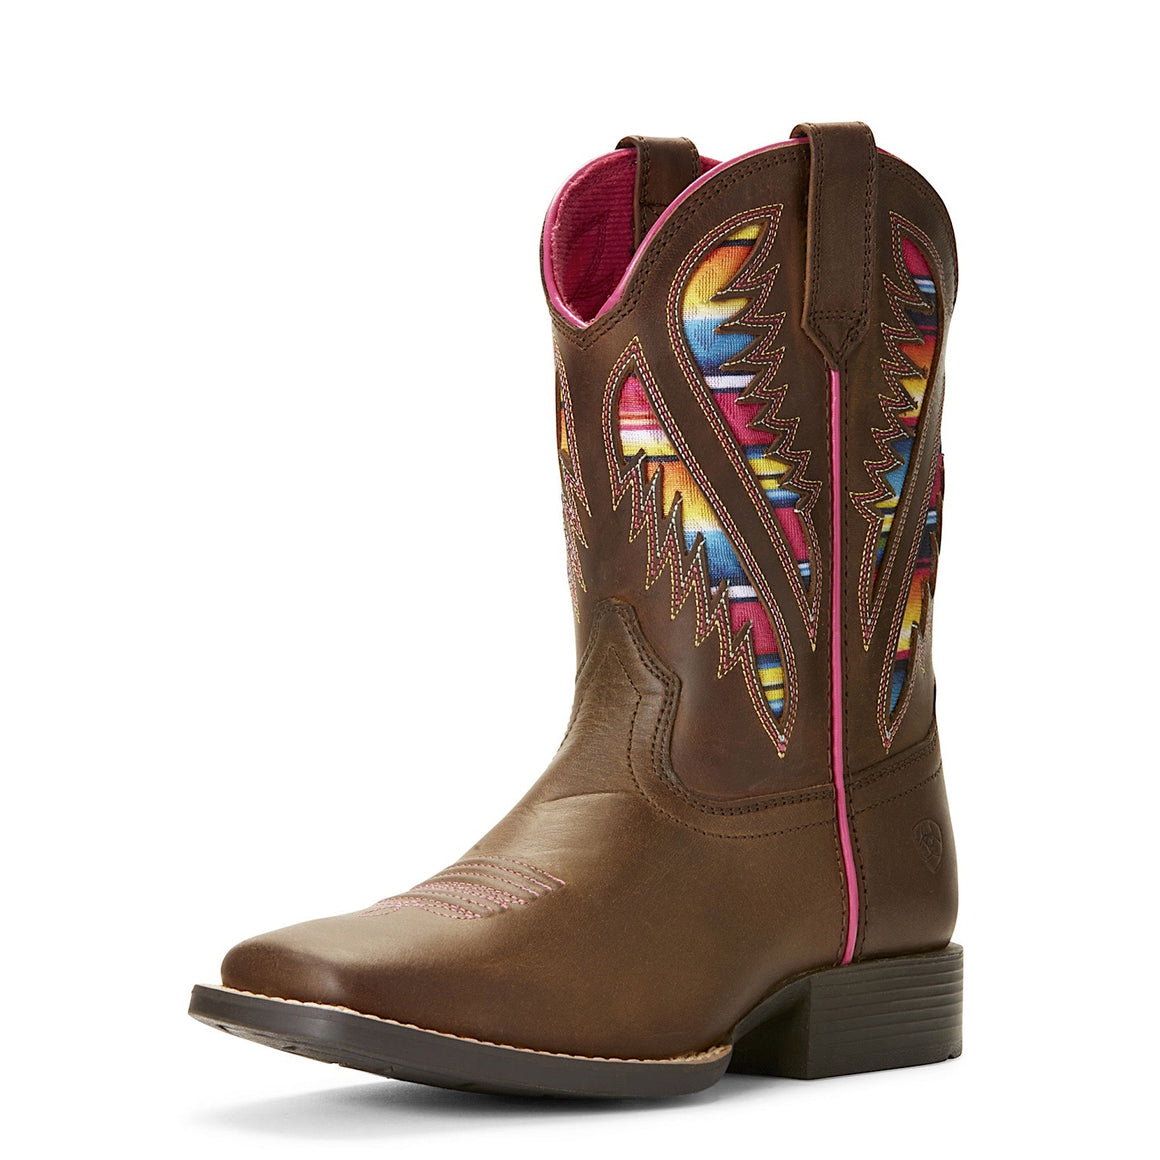 a4ba4bc2741 Buy Ariat Kids Boots - Discount Prices & Australia-Wide Delivery ...